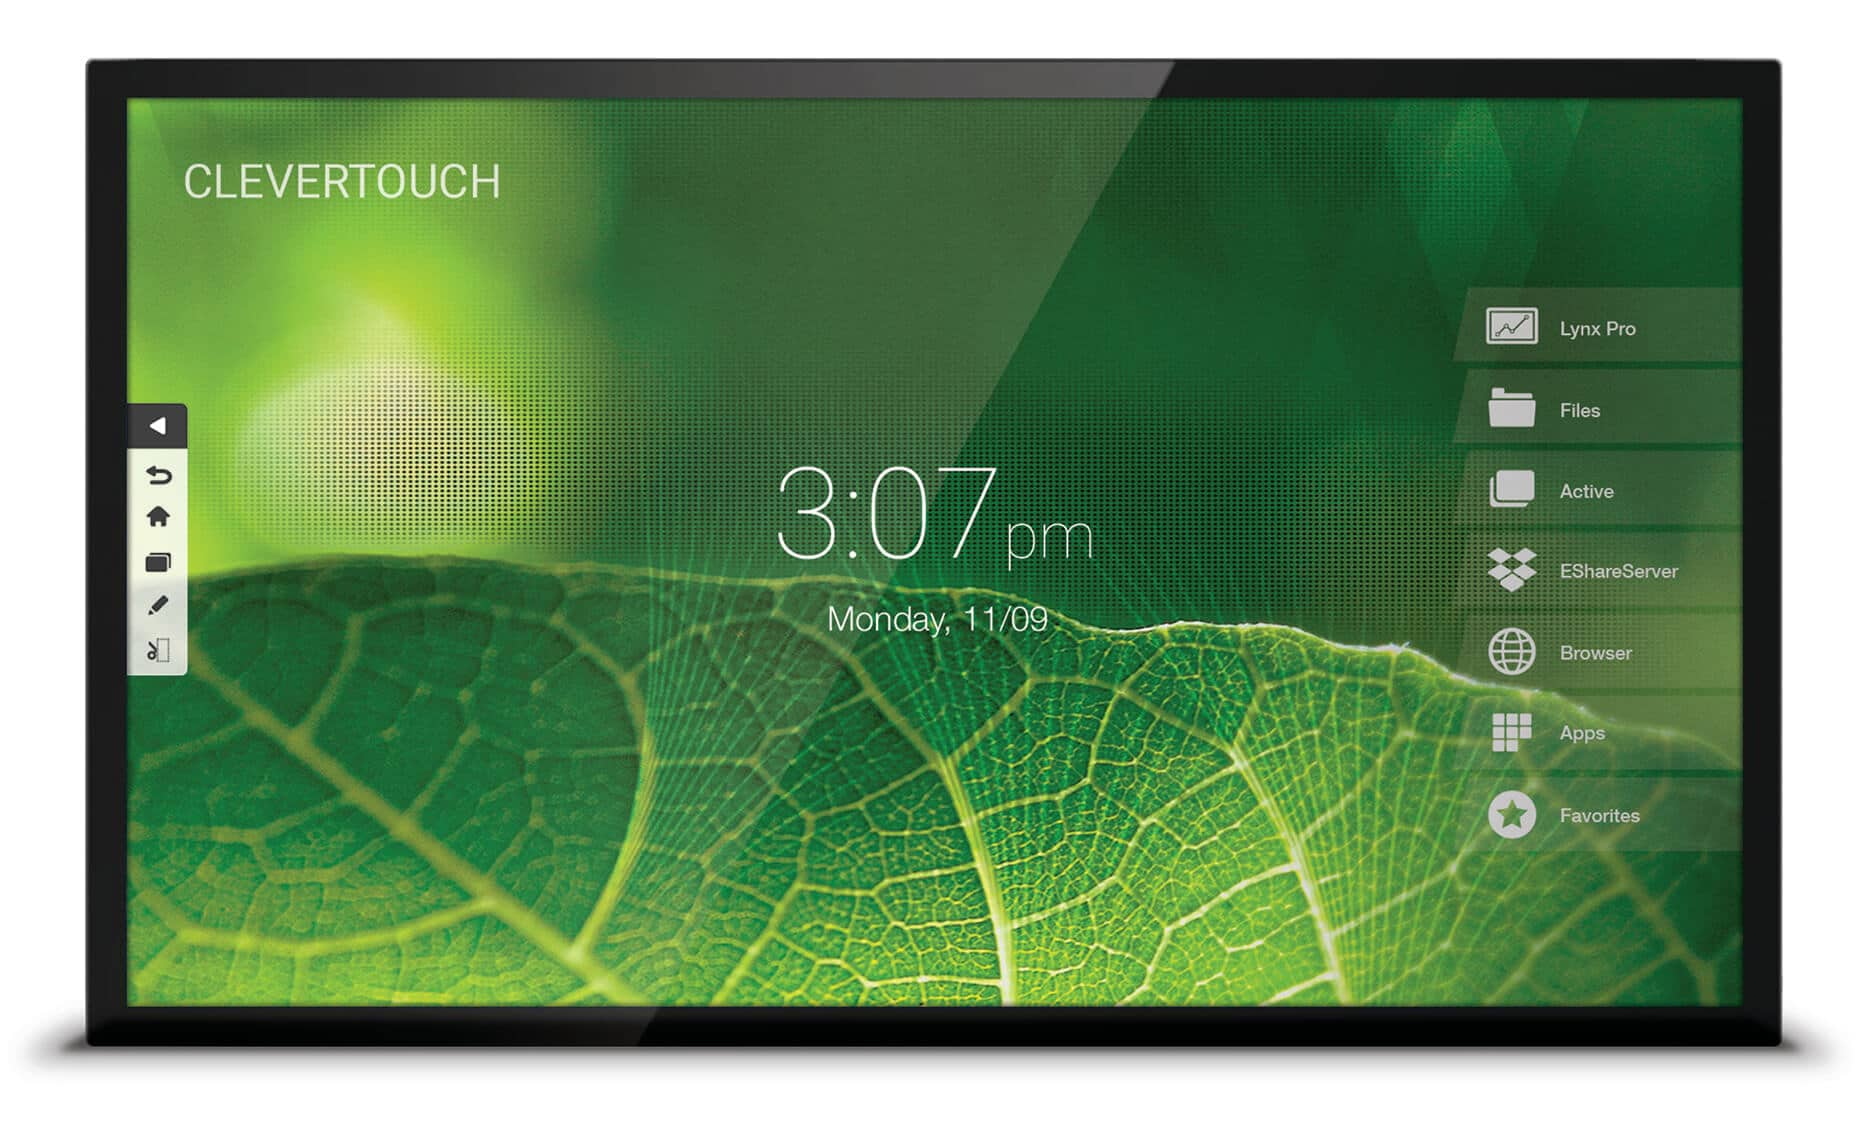 Clevertouch Pro Capacitive Touch